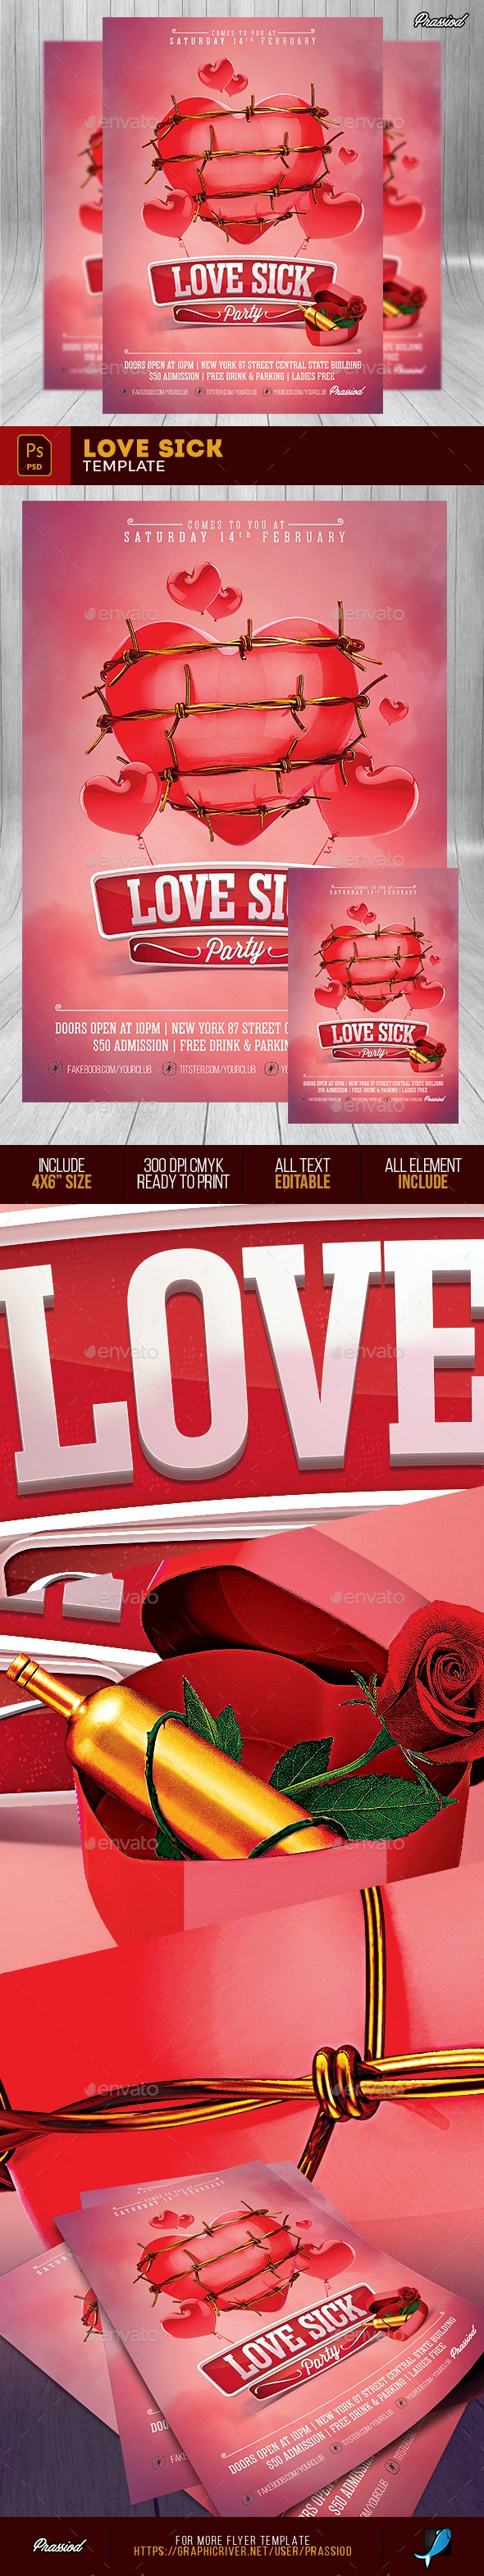 Love Sick Flyer Template - Clubs & Parties Events